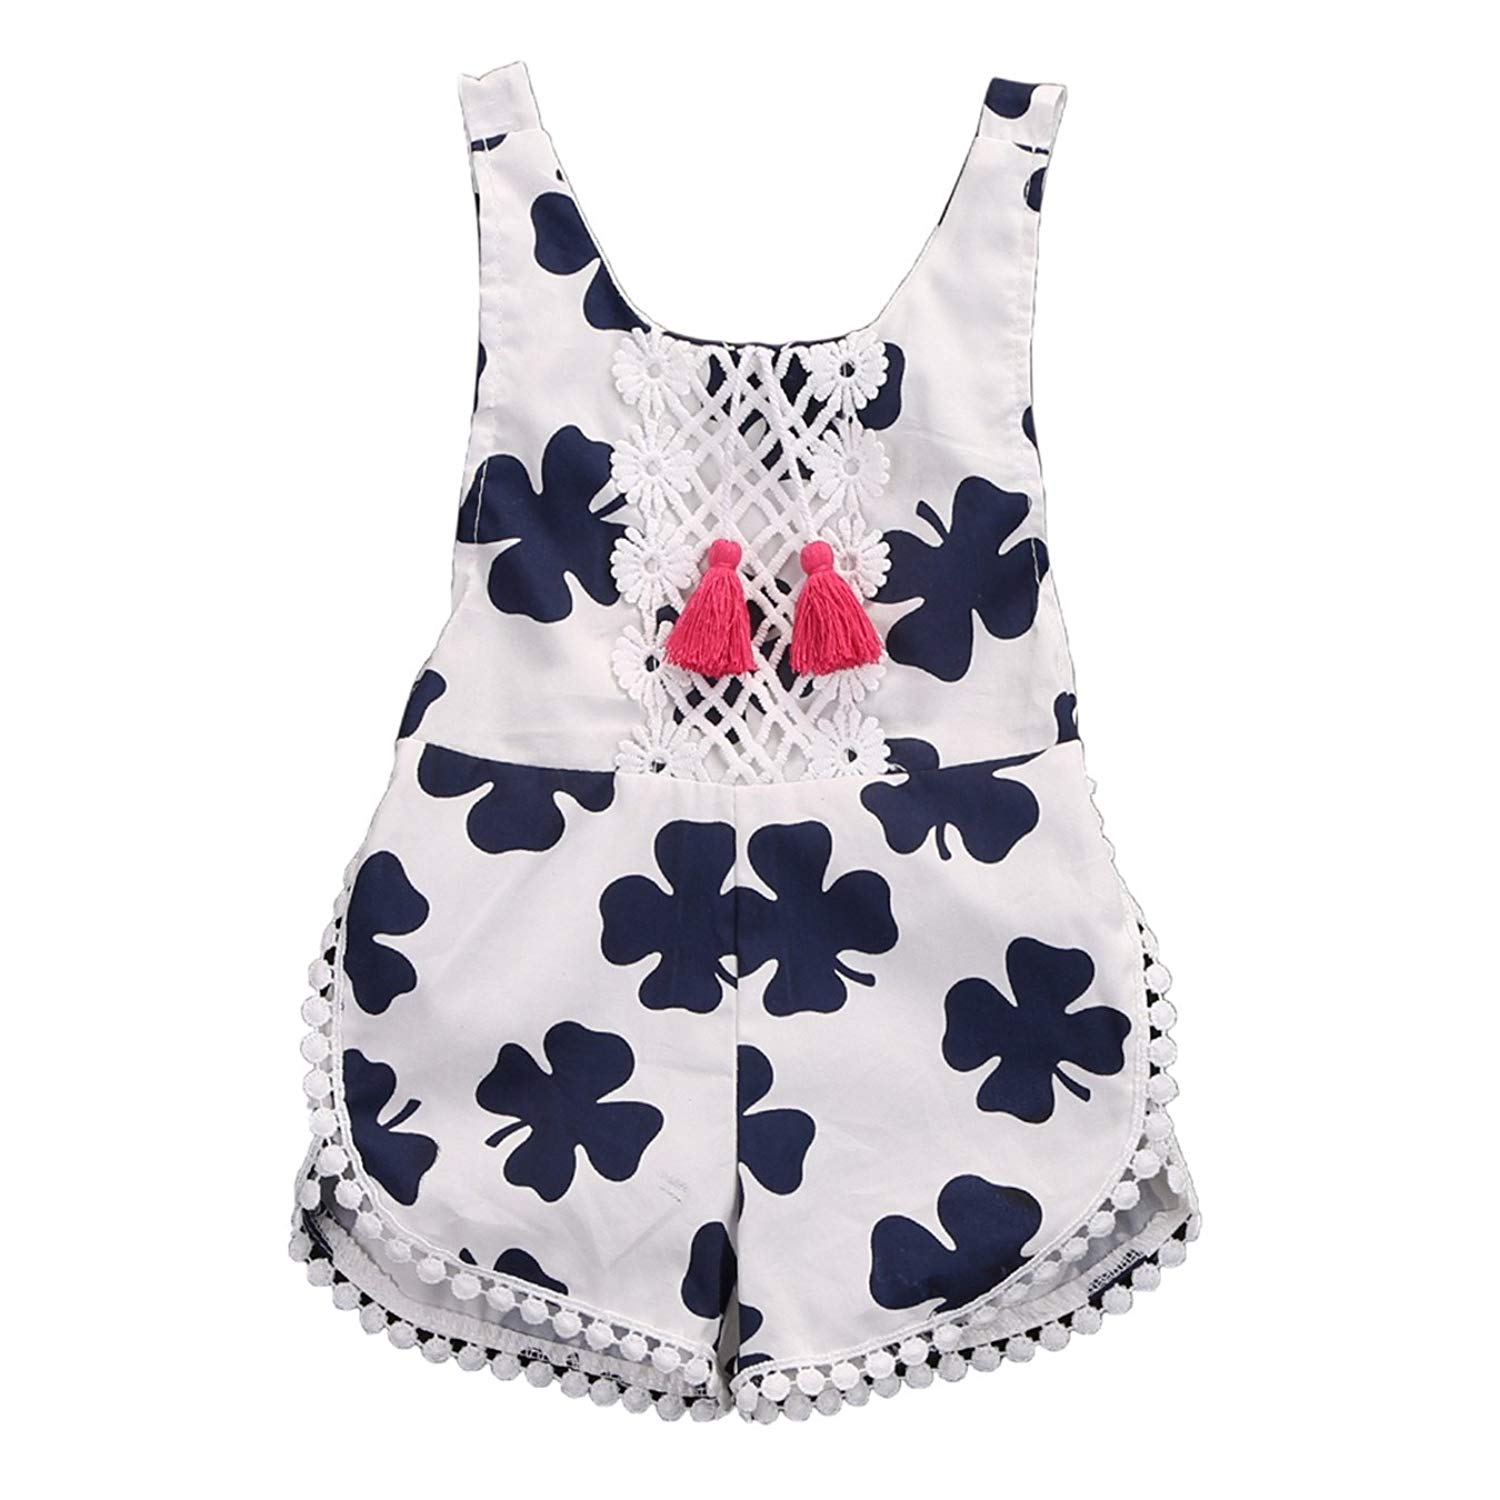 39948a11c Cheap 4t Girl Clothes